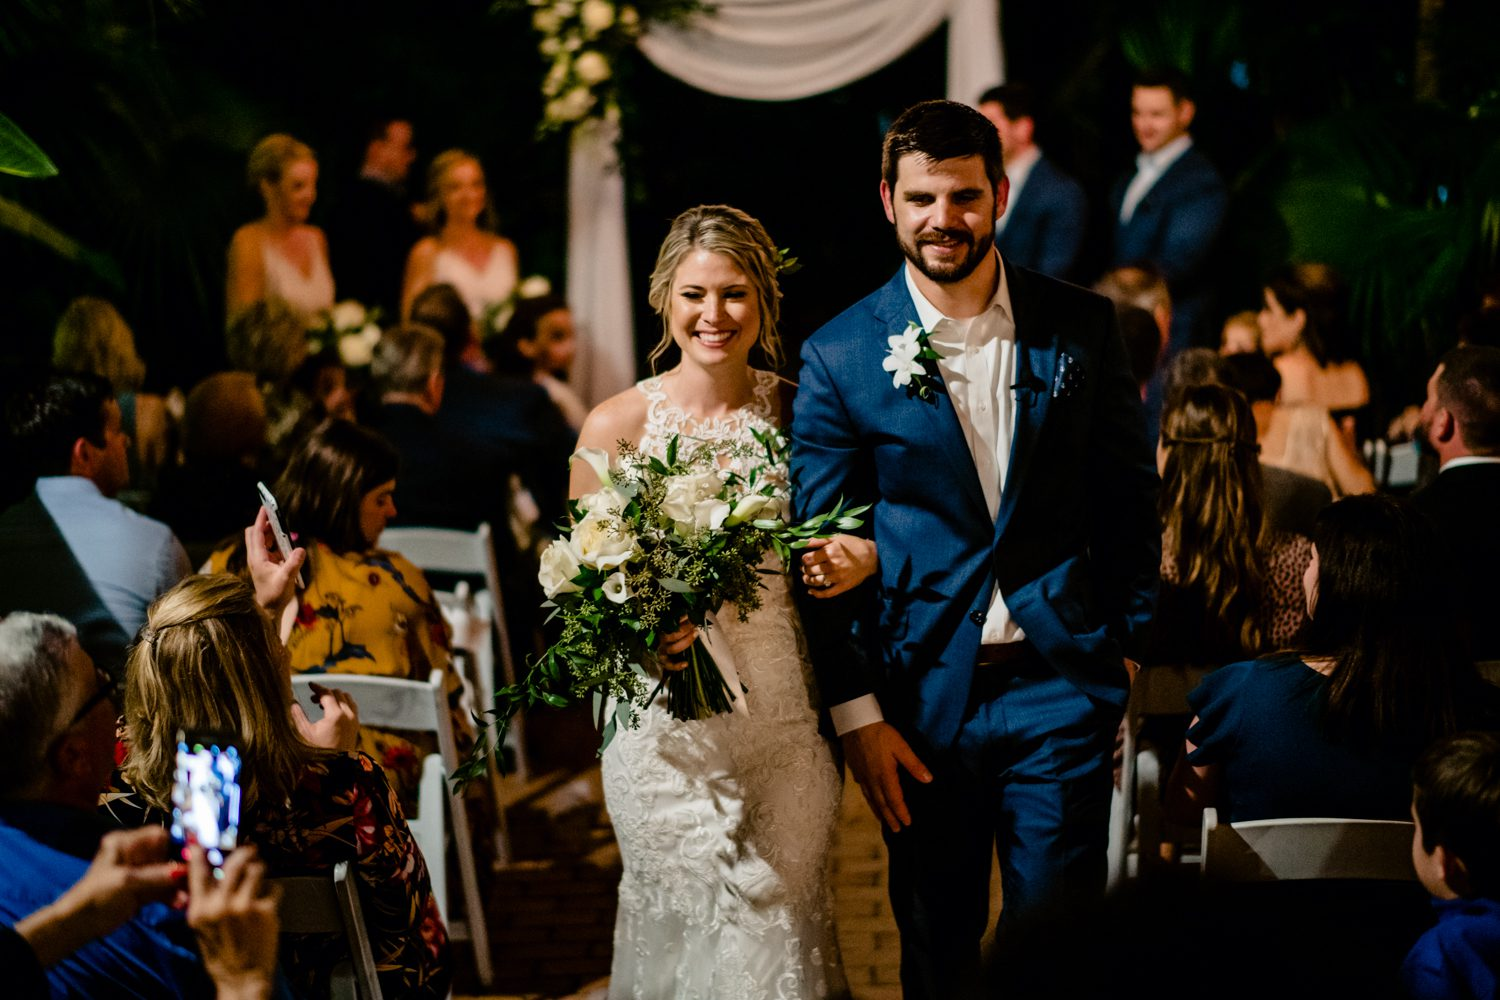 Bride and groom walking down the aisle after wedding ceremony at hemingway house